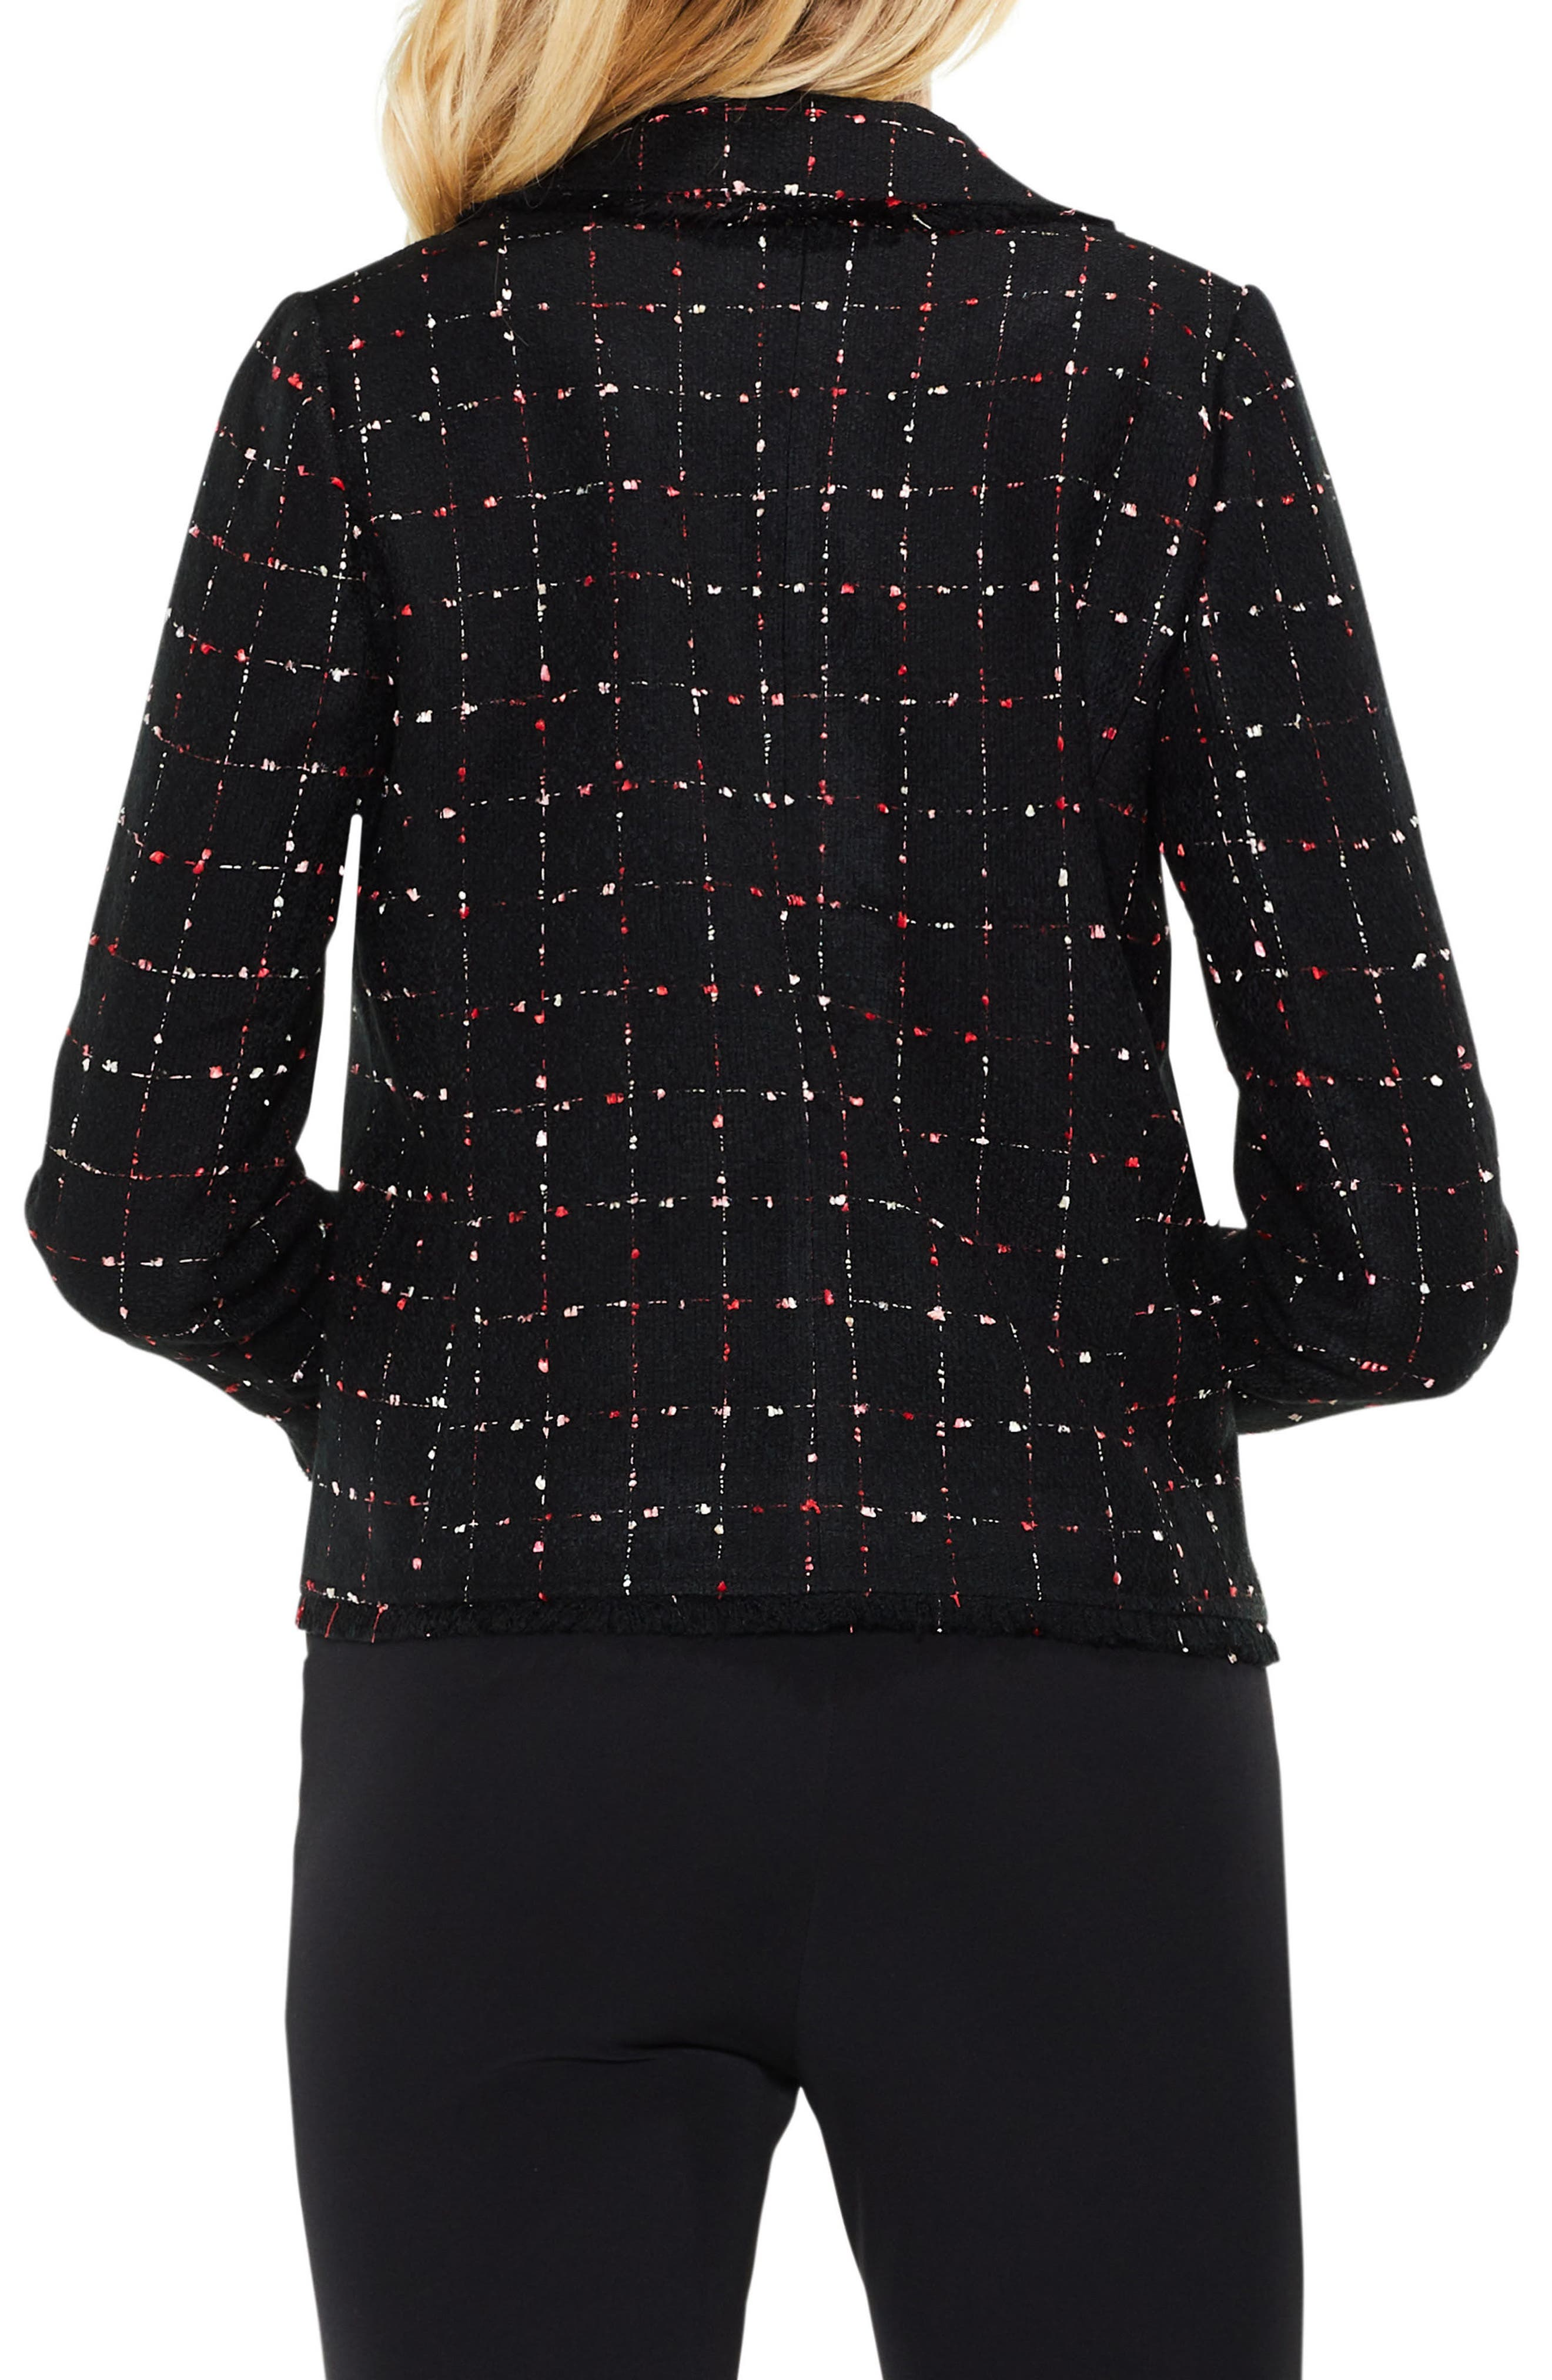 Spring Windowpane Tweed Open Front Jacket,                             Alternate thumbnail 2, color,                             Rich Black